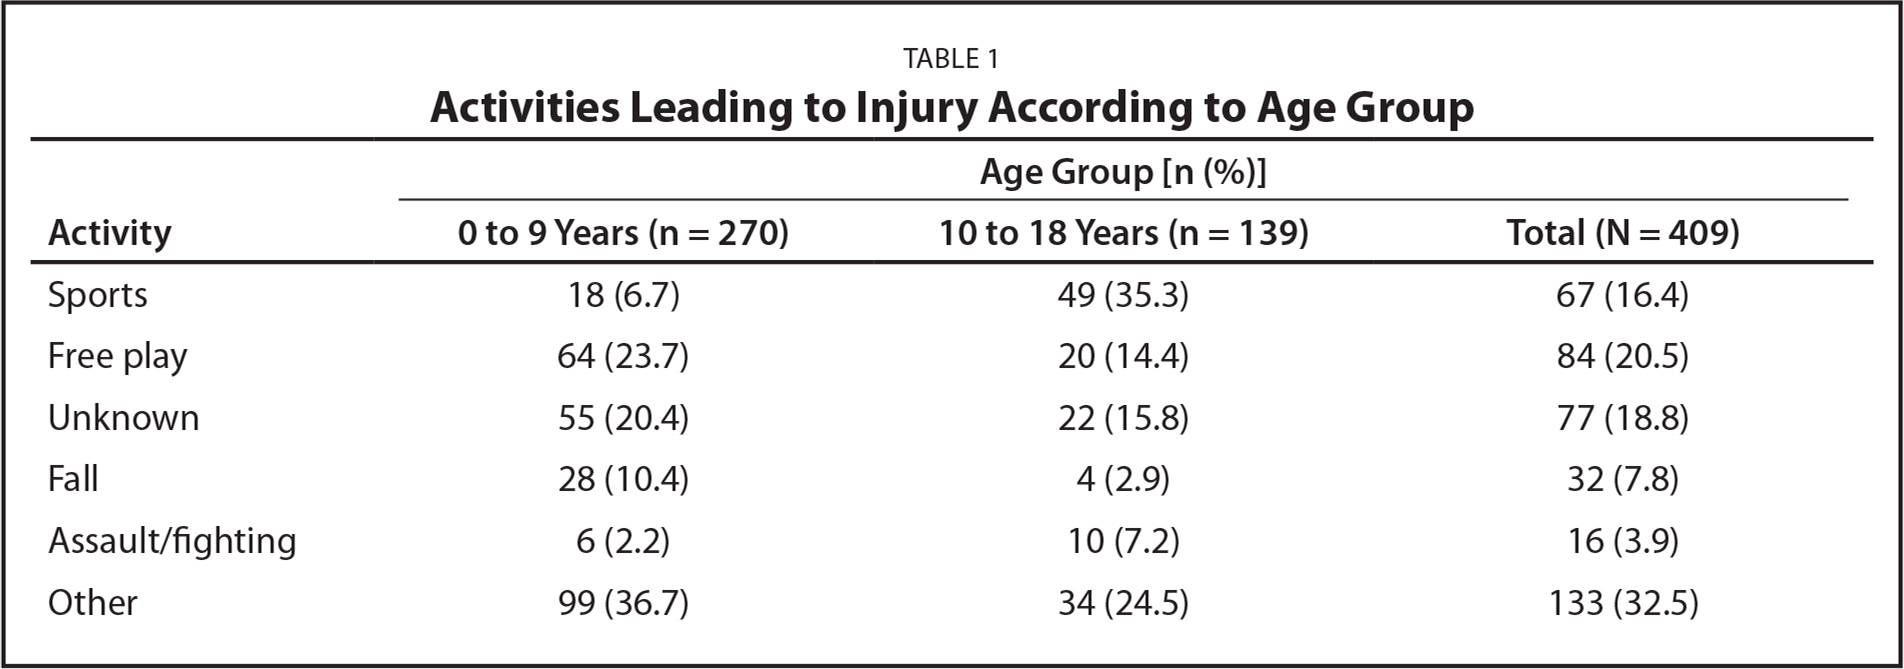 Activities Leading to Injury According to Age Group